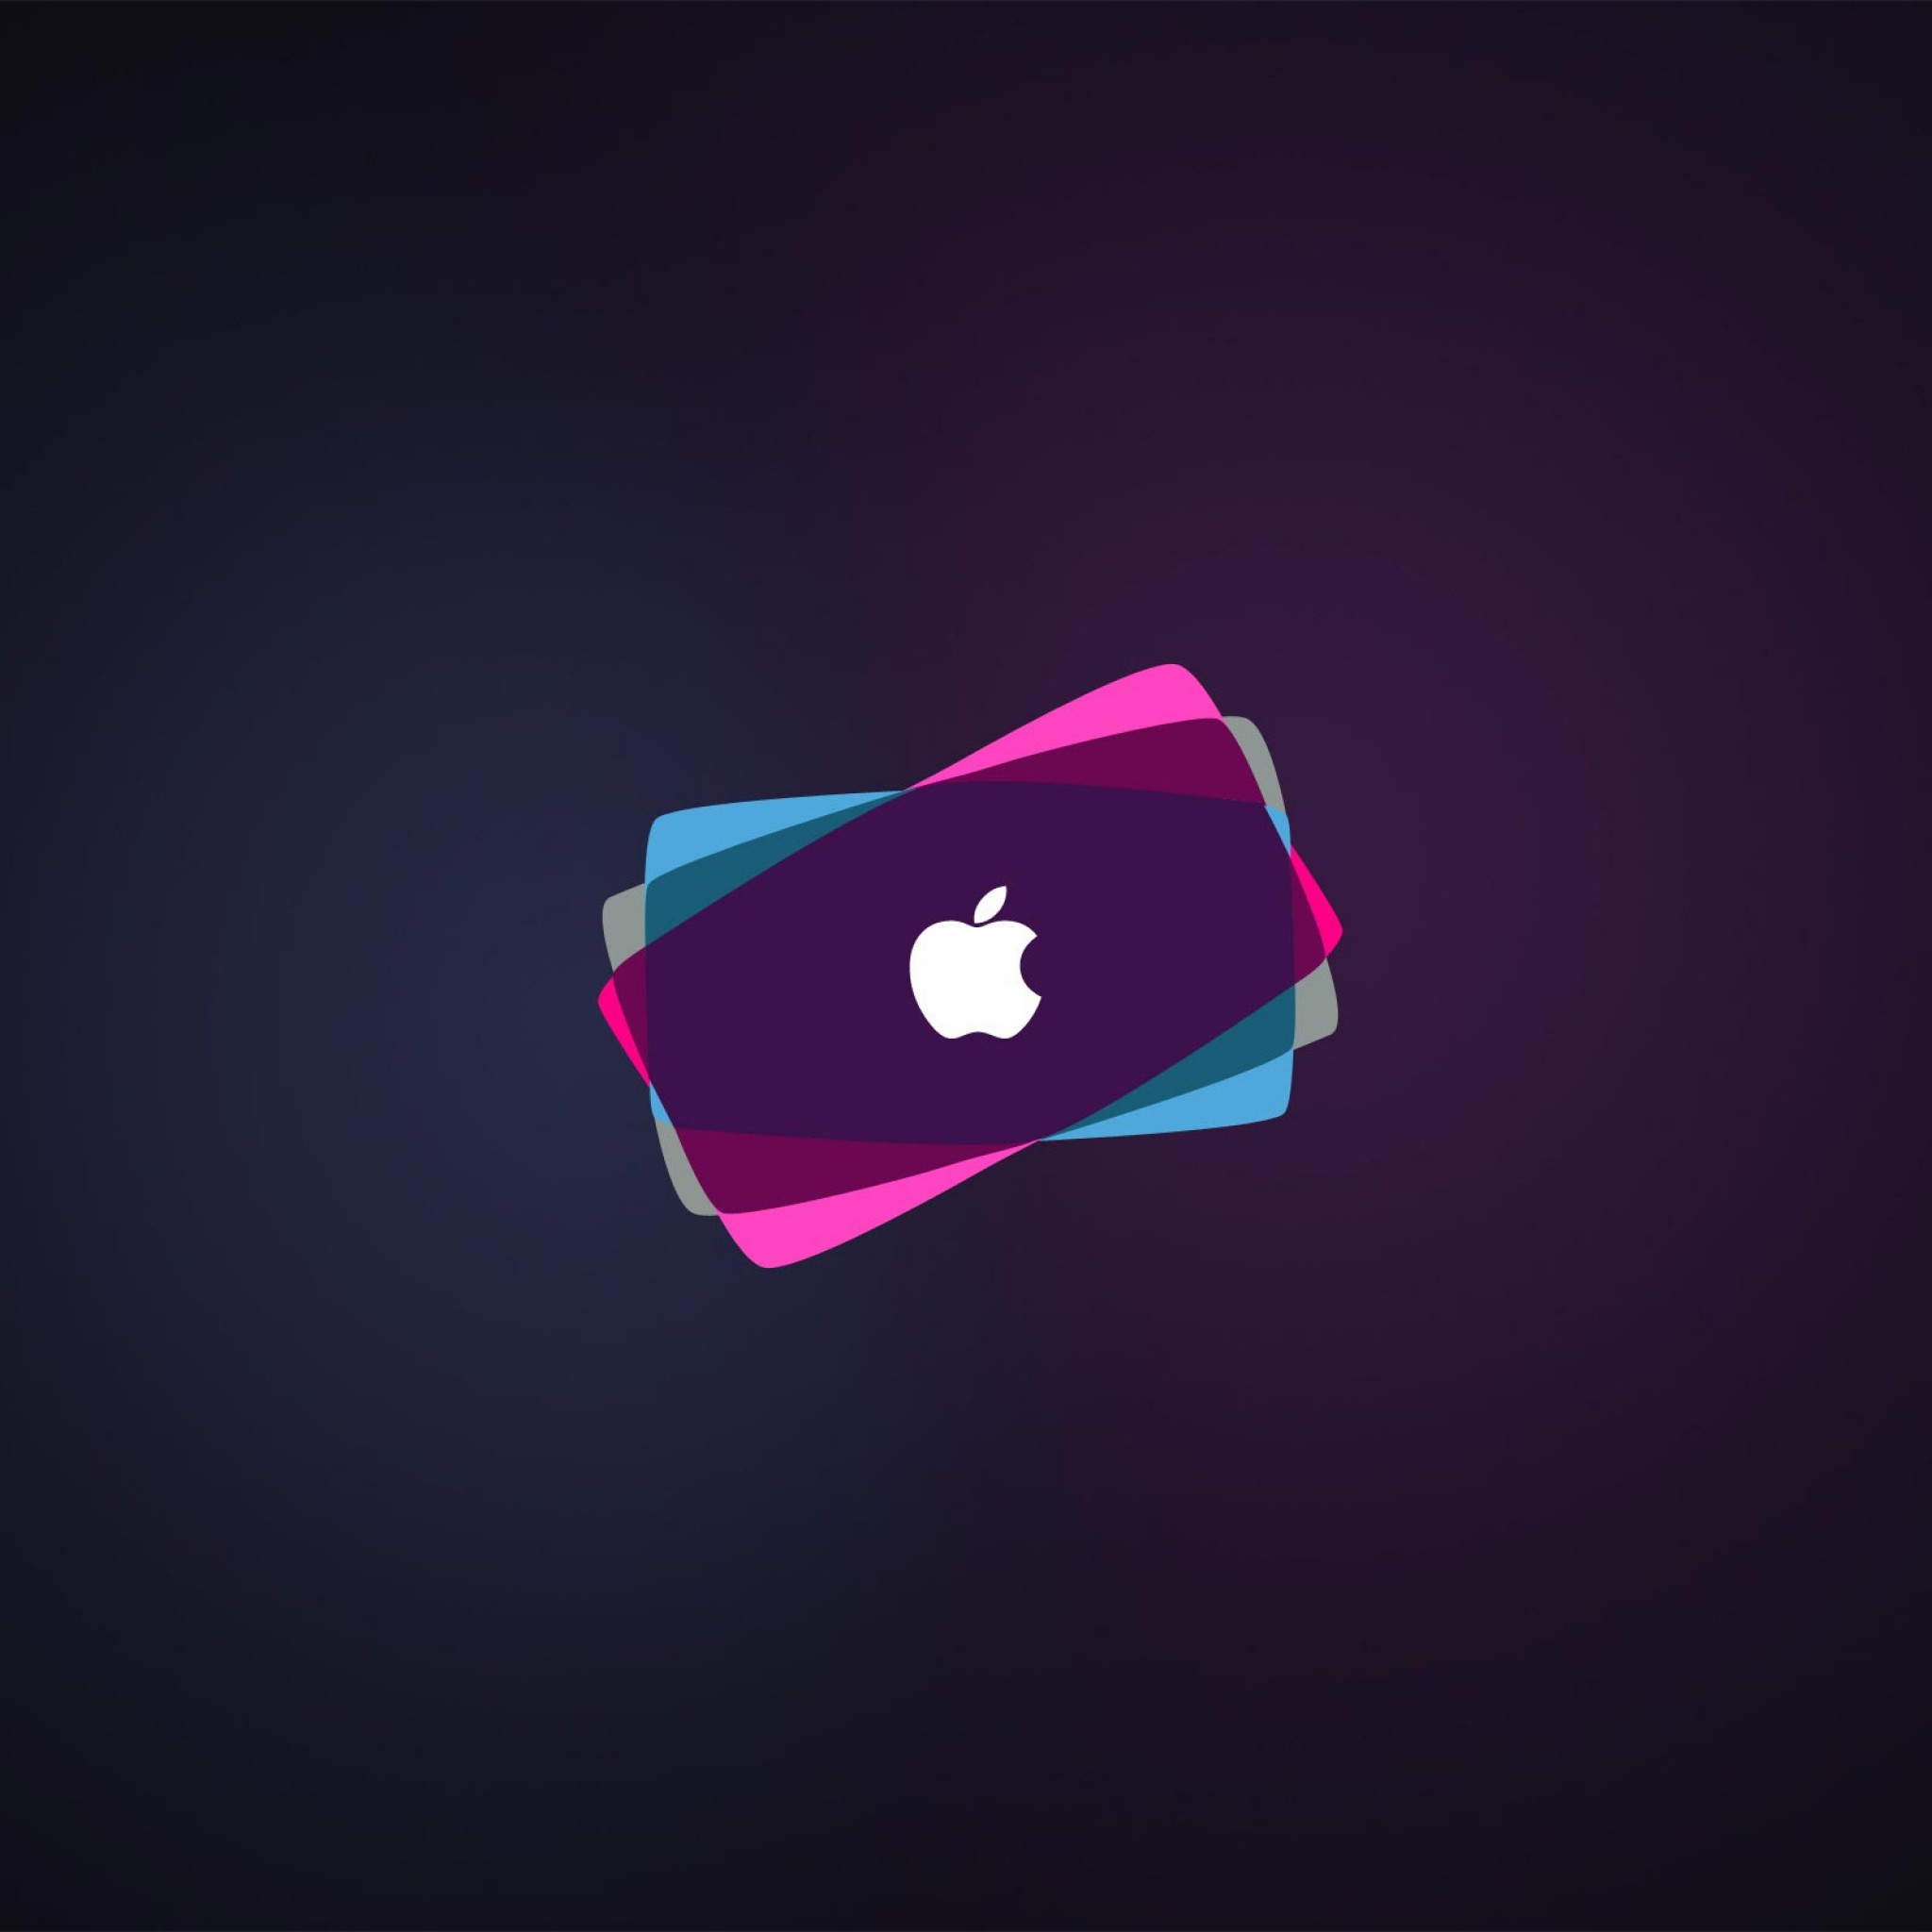 Apple iPad Wallpapers in HD iPadAppAdvice 2048x2048